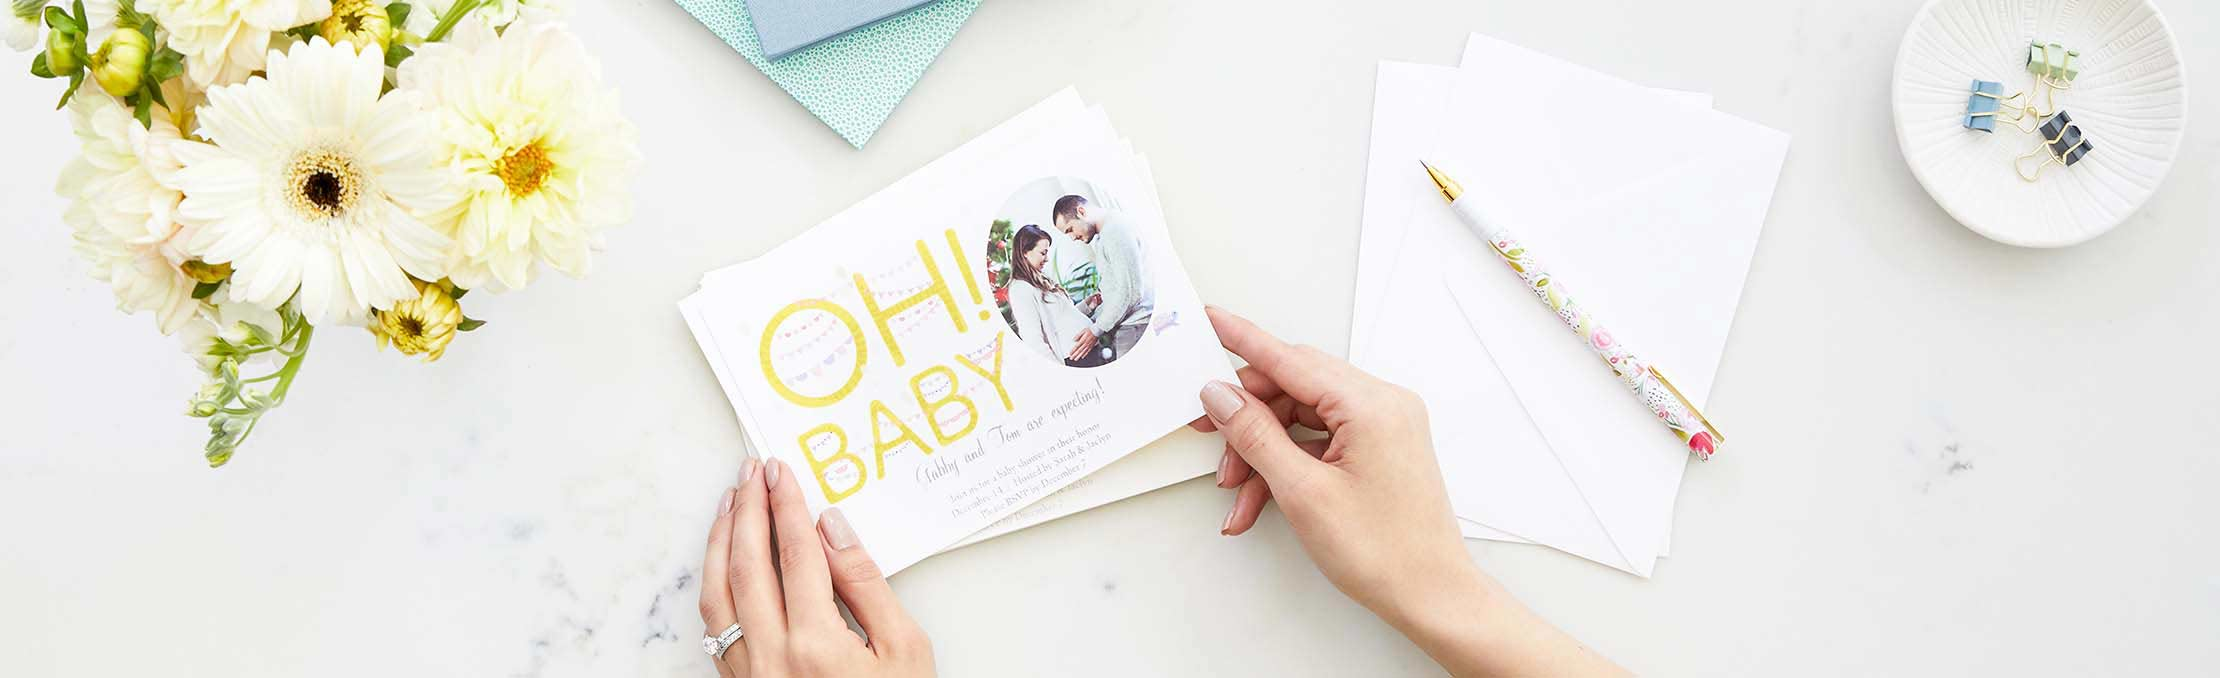 How To Word Invitations For Coed Baby Shower Walgreens Photo Blog